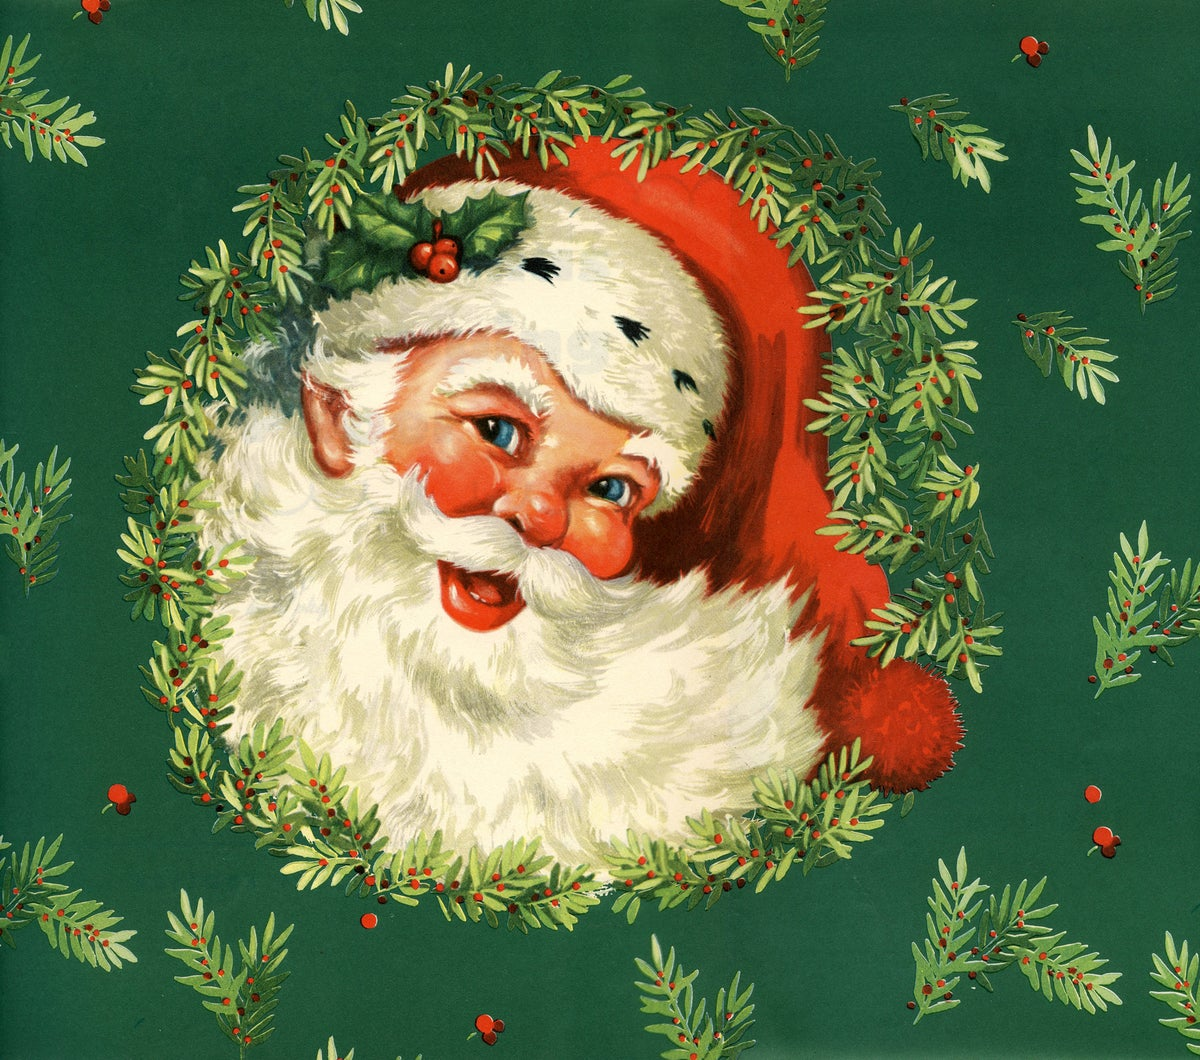 Image of santa at the farm